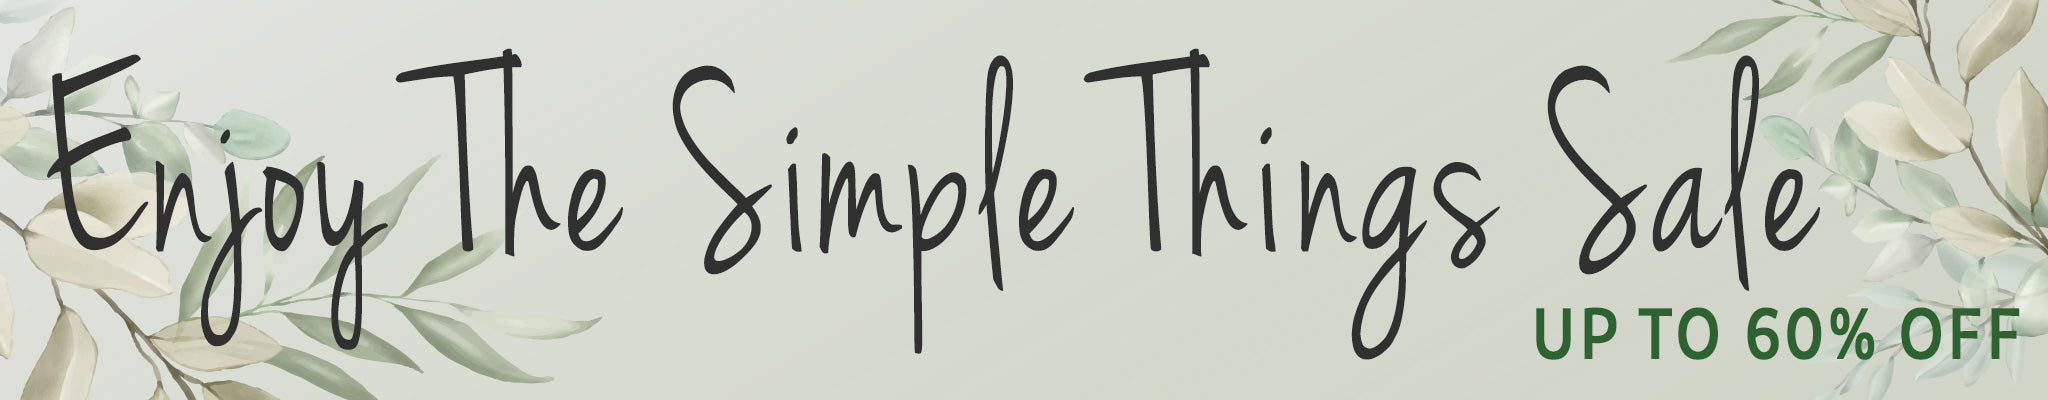 Enjoy the Simple Things Sale